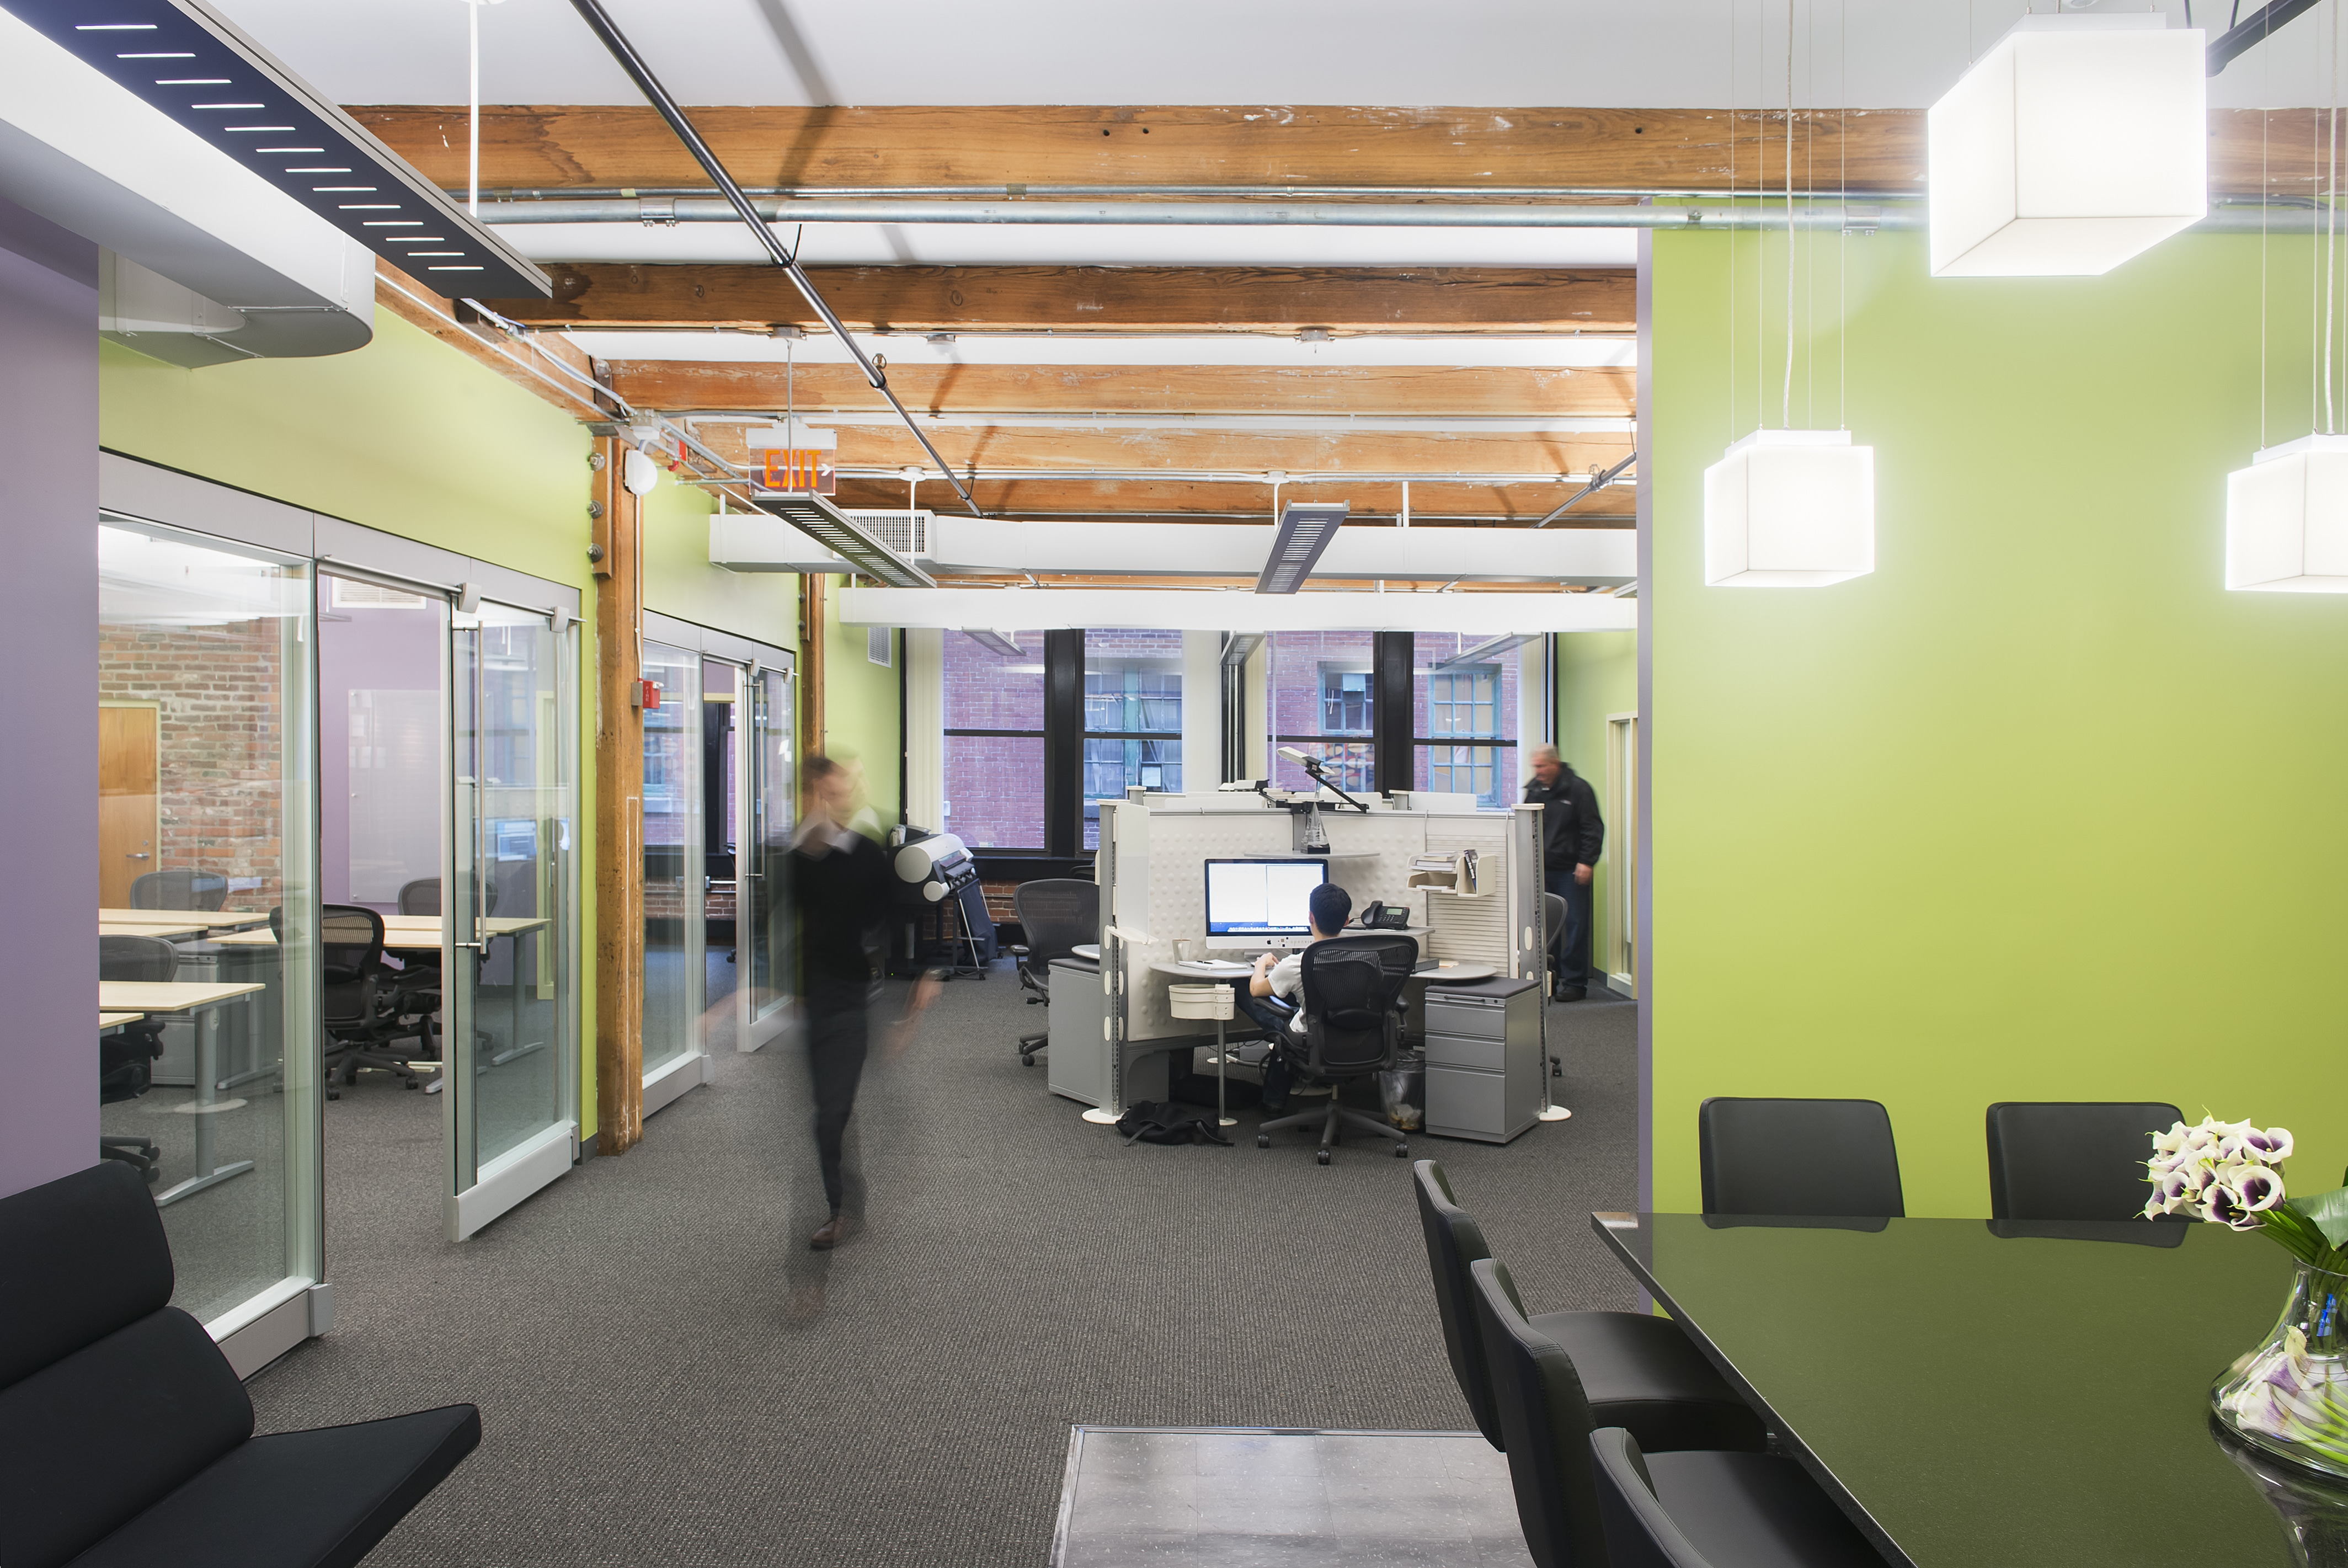 Office Remodeling Tips: 3 Easy Ways To Reduce Costs